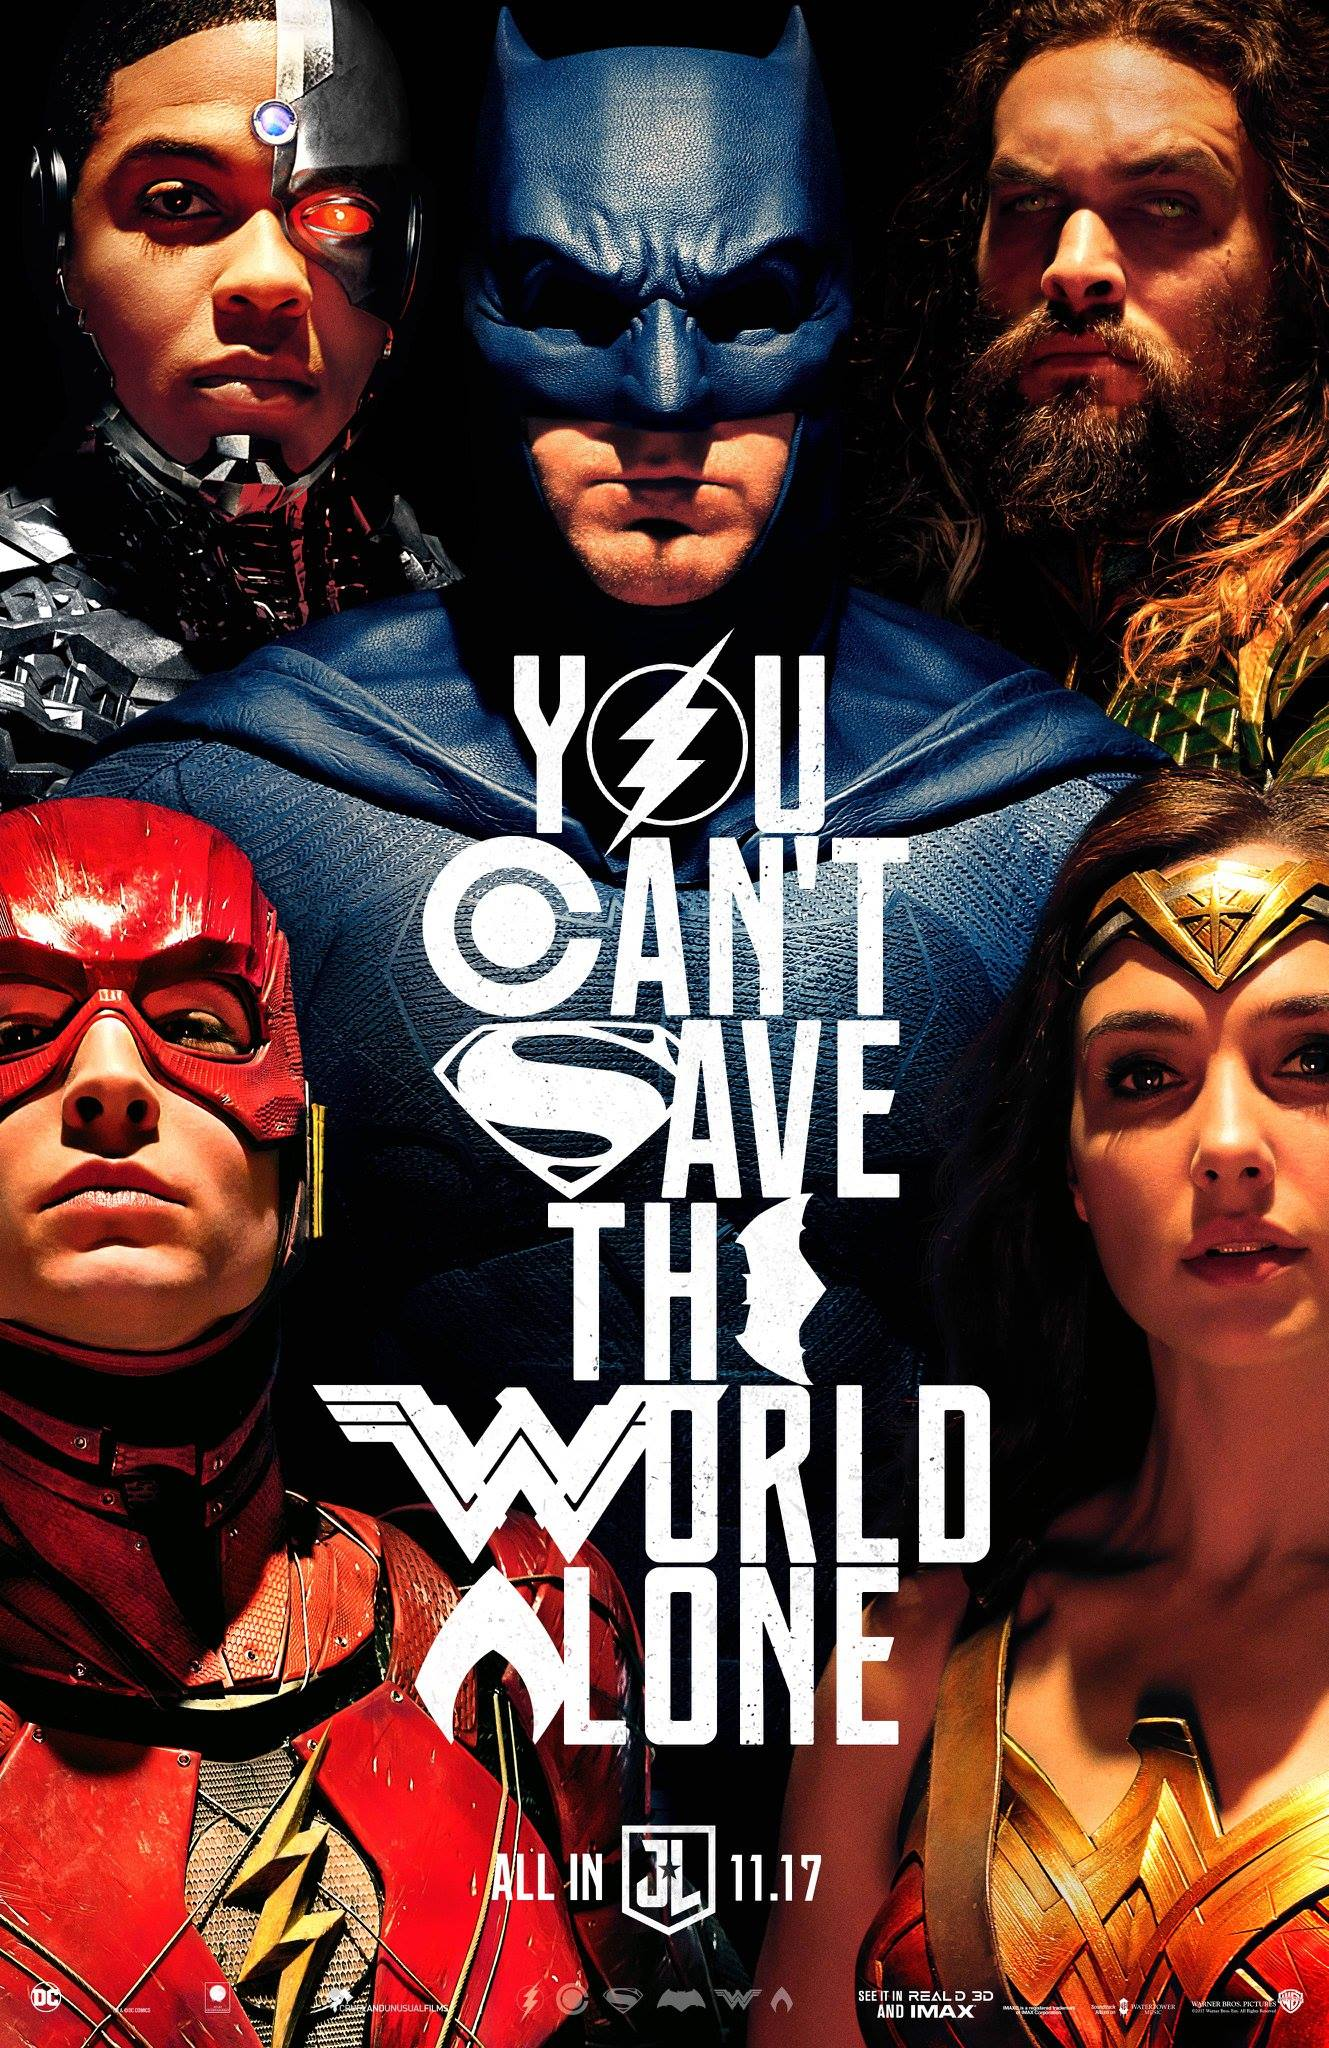 The Comic-Con trailer for Justice League reveals their